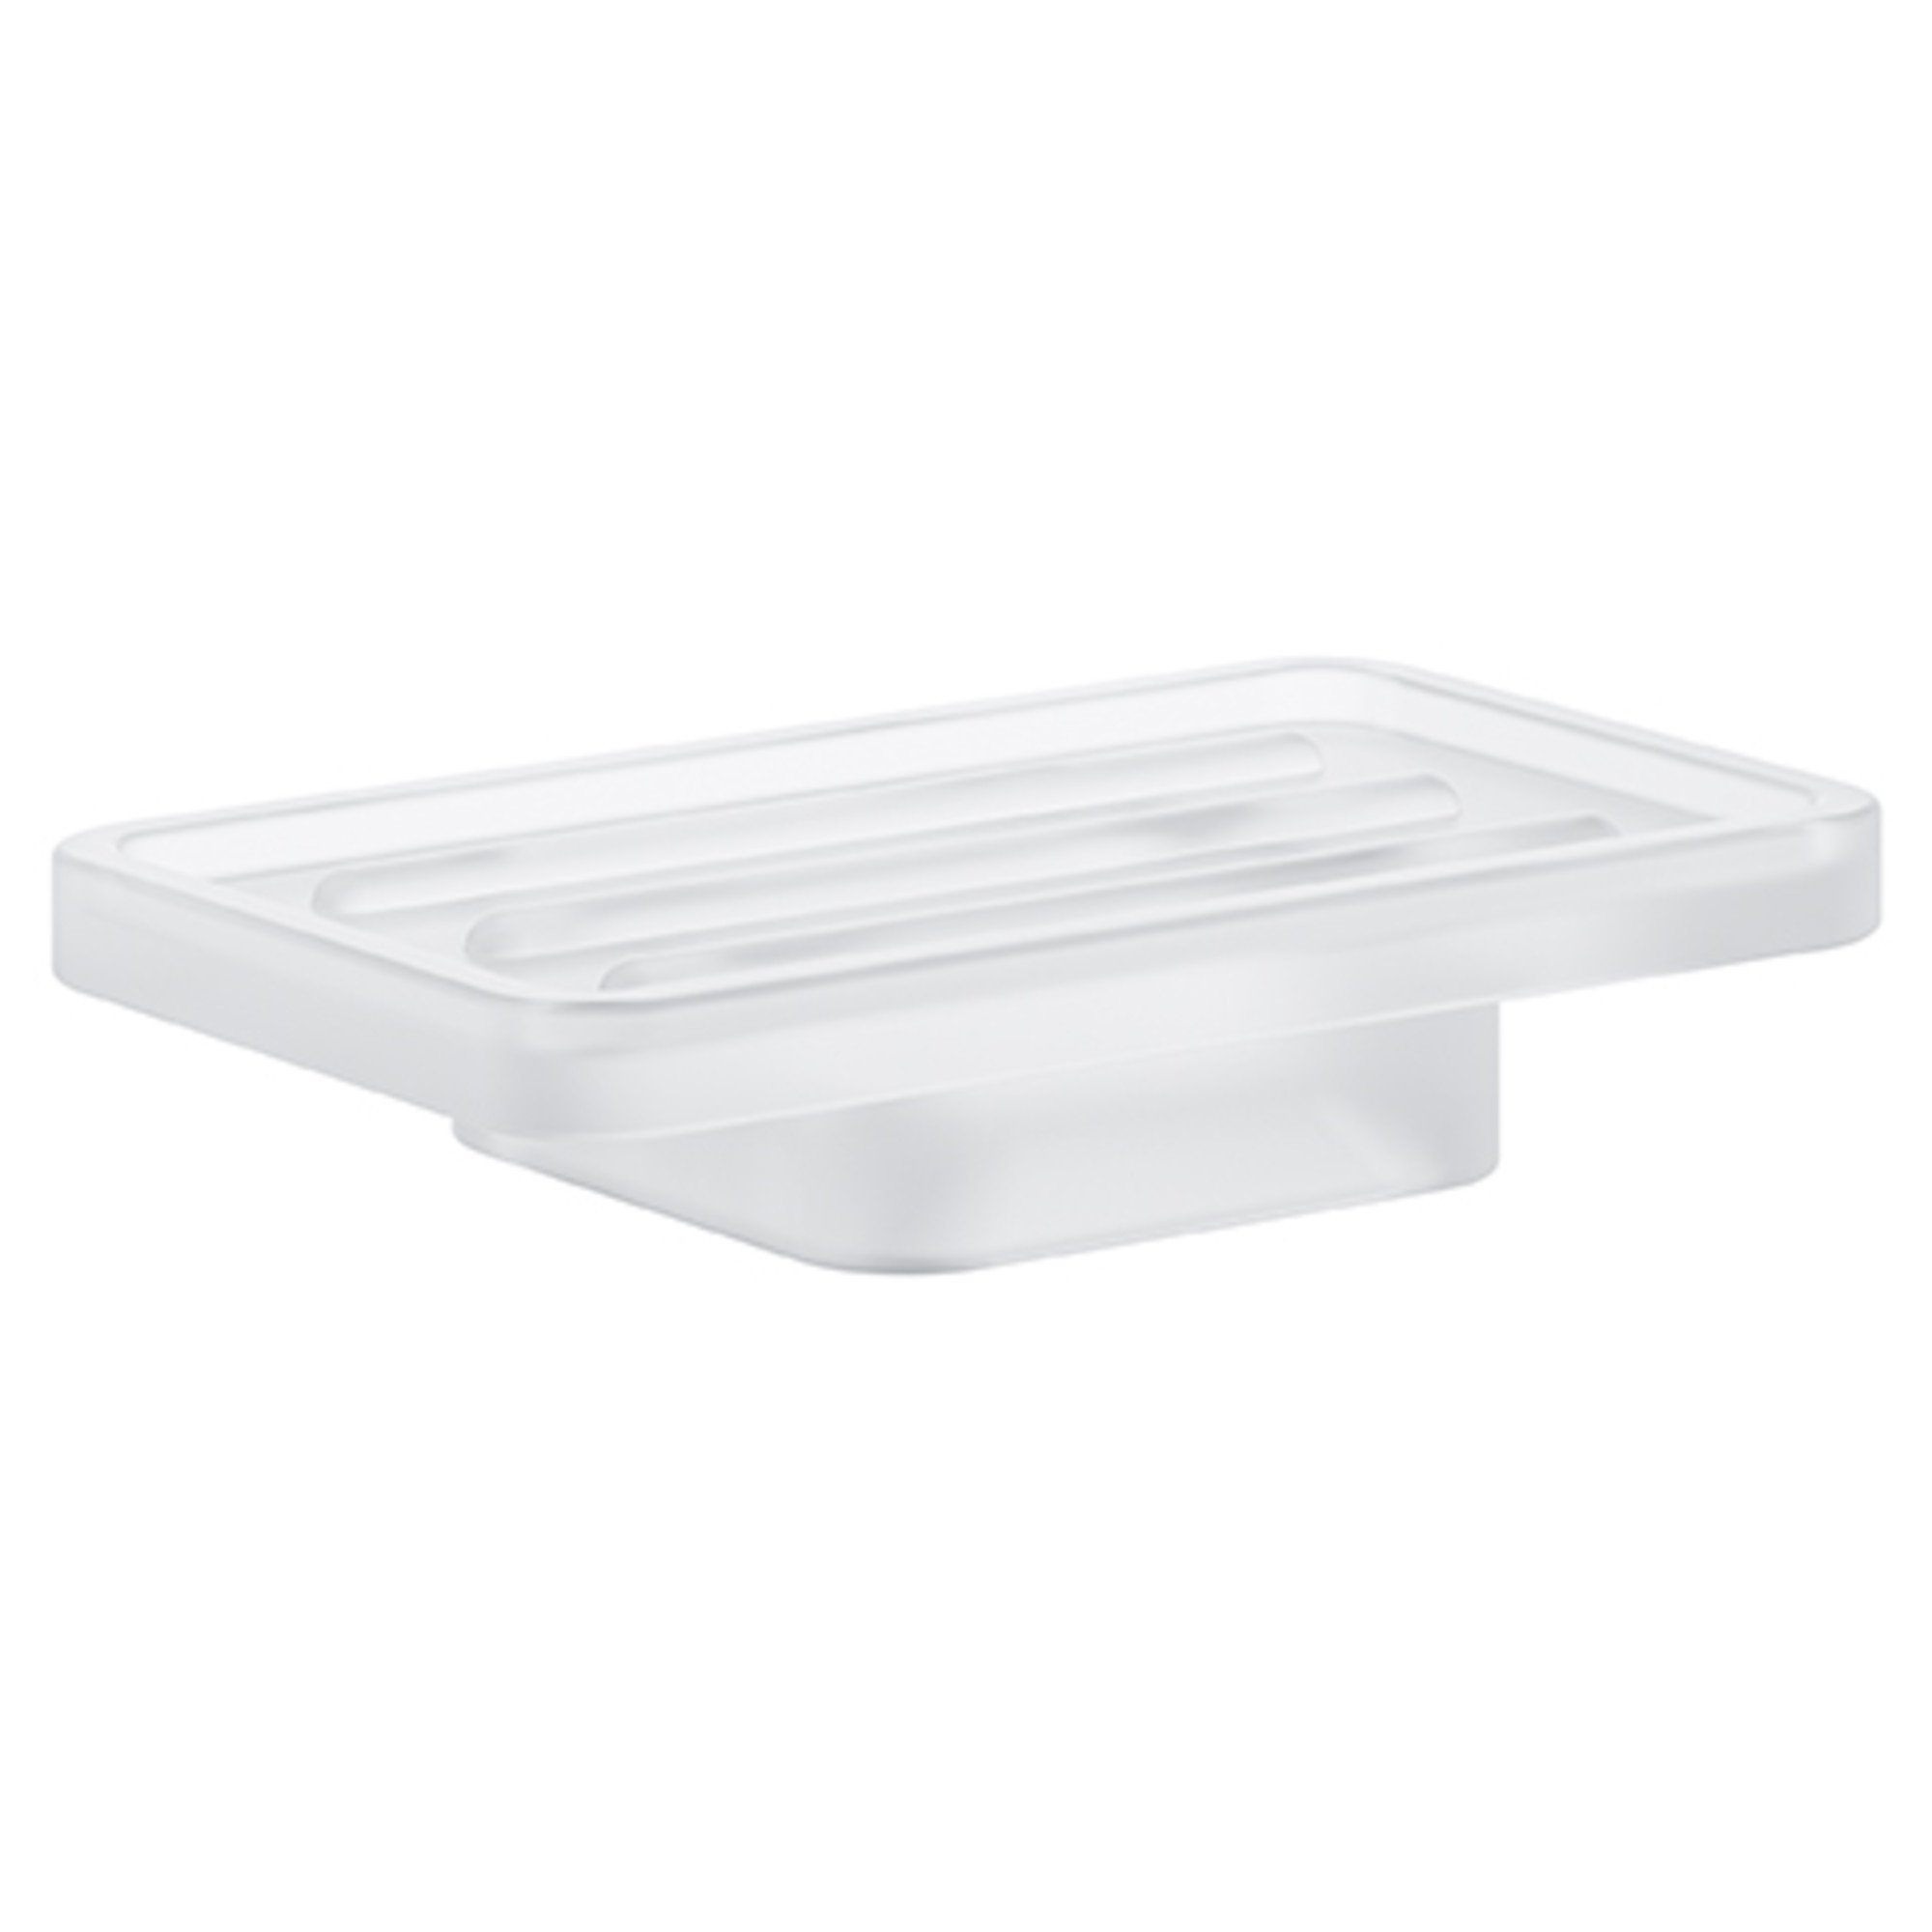 GROHE 40806000 Selection Cube Soap Dish, Starlight Chrome